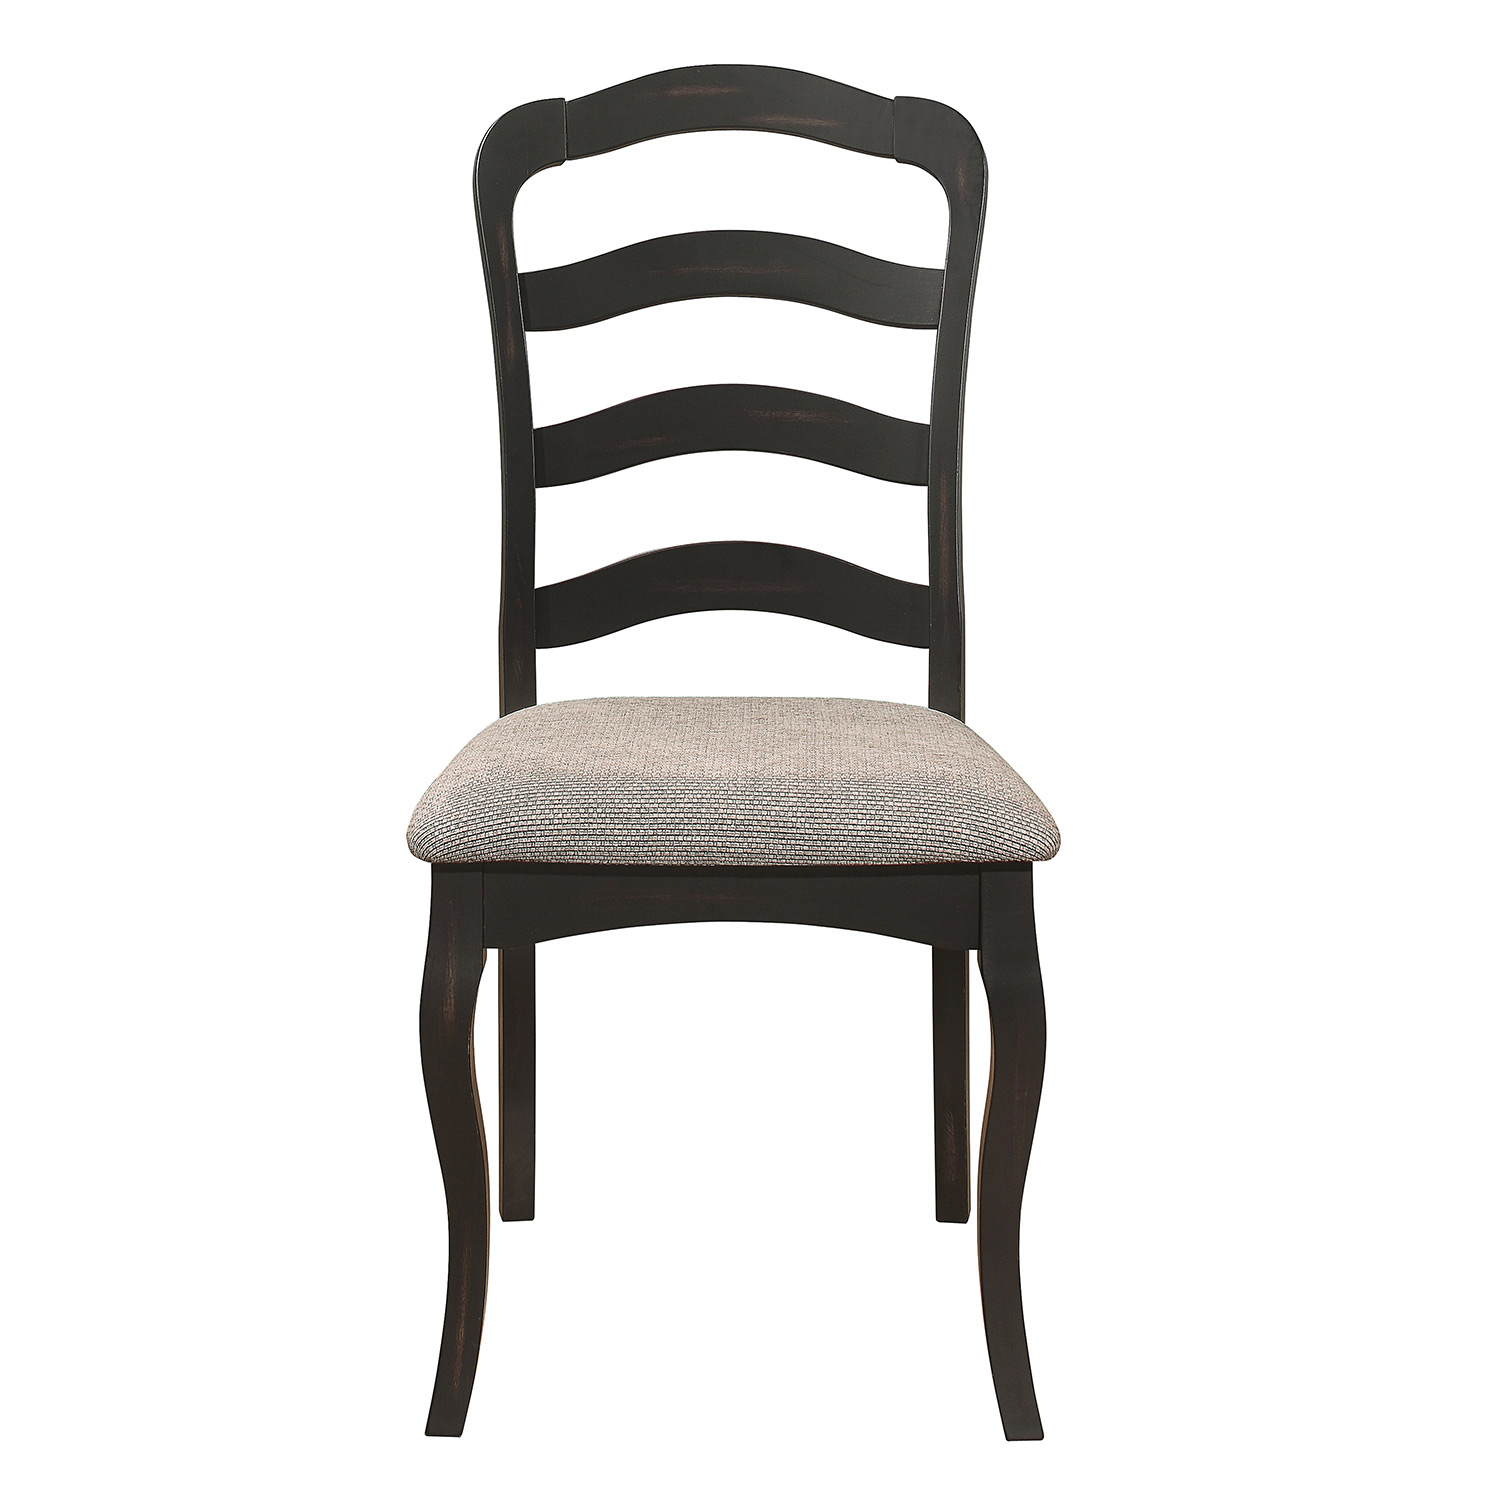 Homelegance Coring Side Chair - Antique